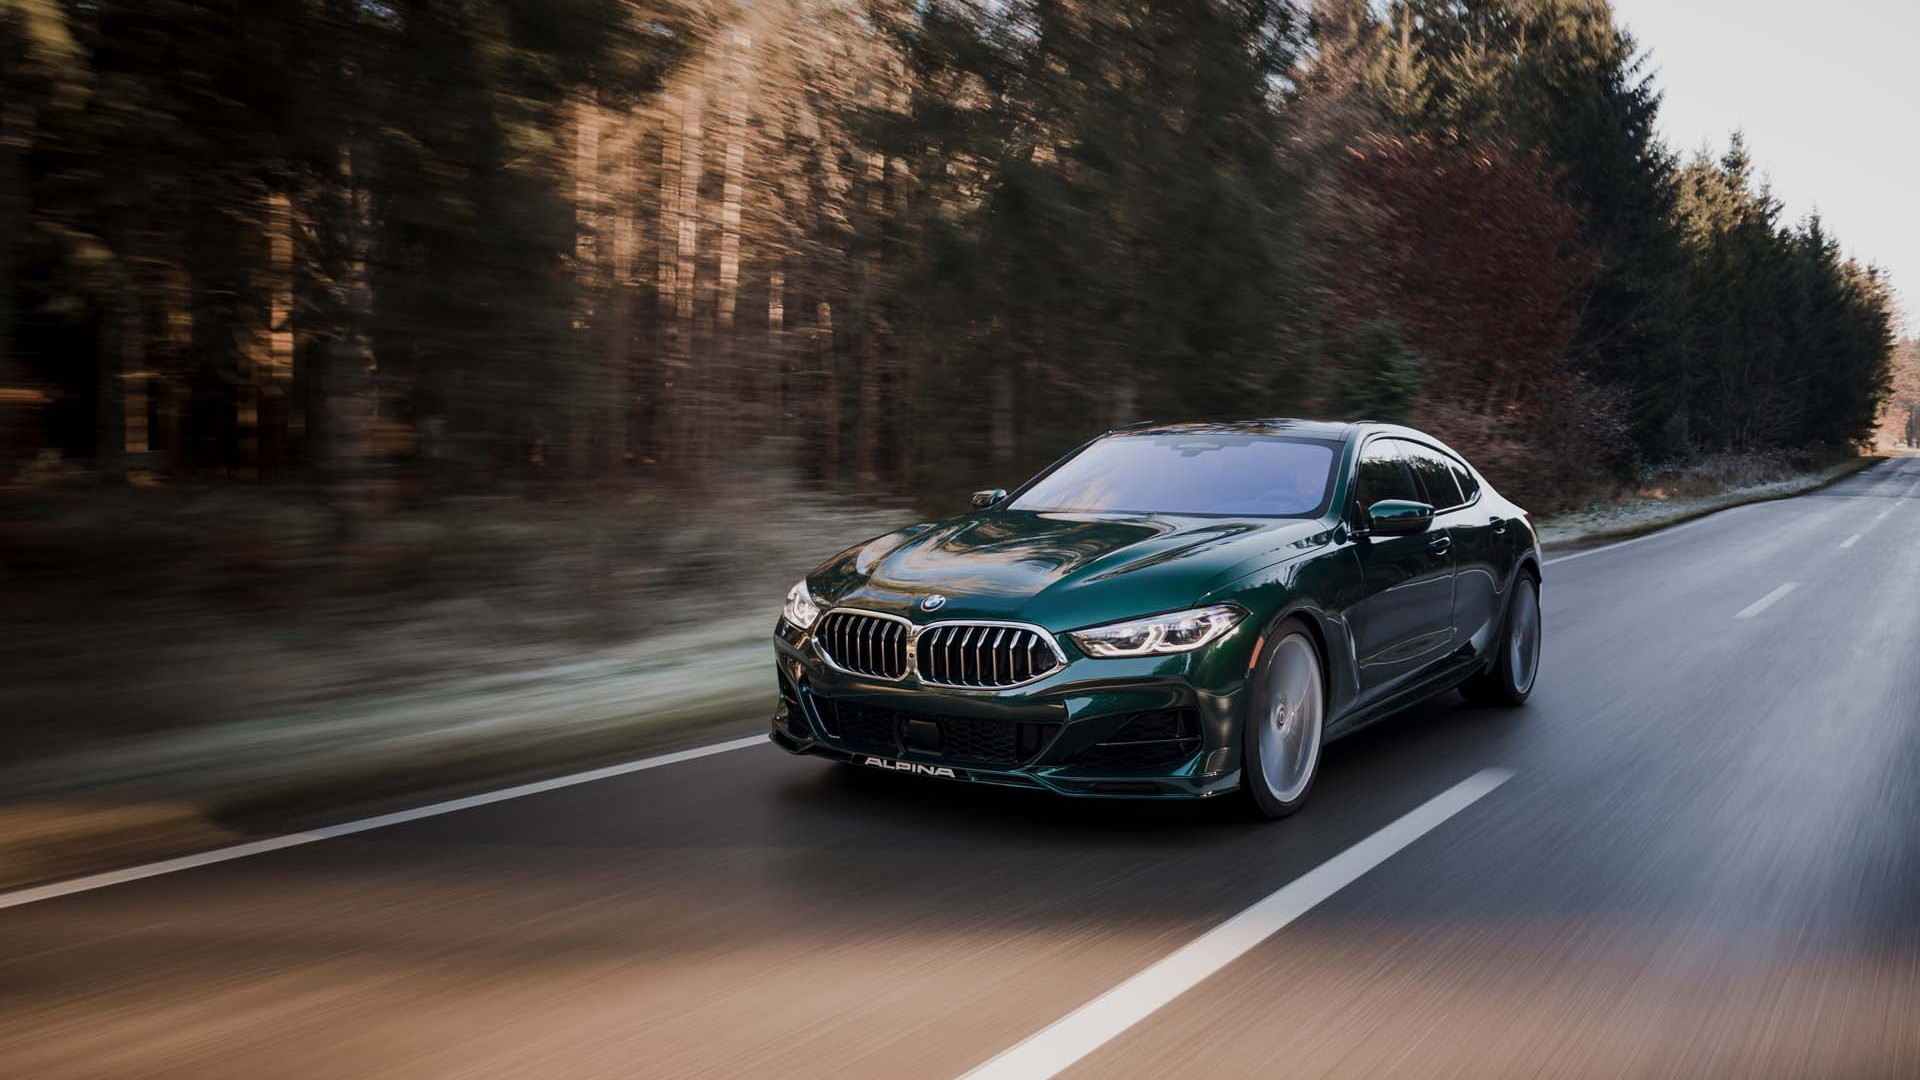 2022 BMW Alpina B8 Gran Coupe